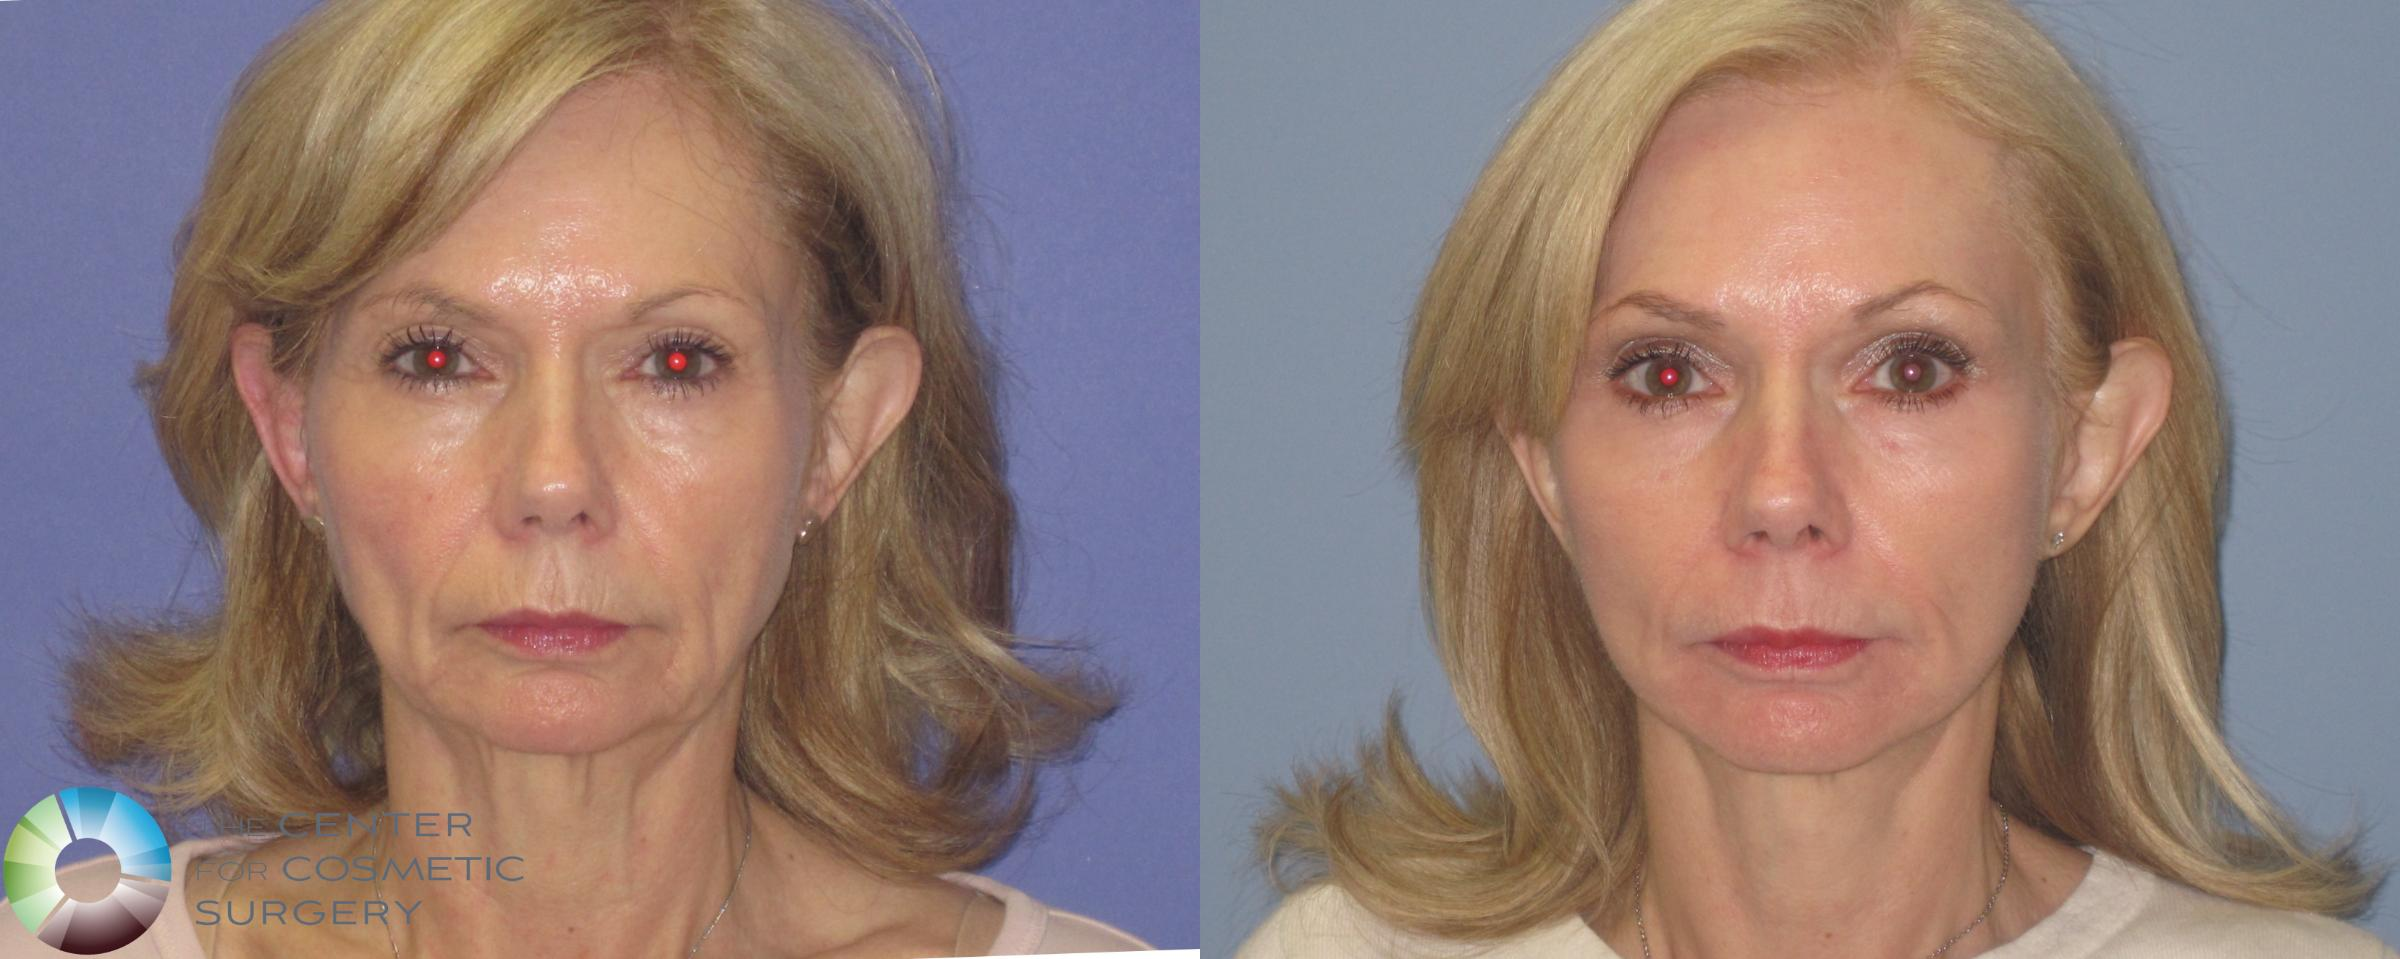 Laser Skin Resurfacing Case 460 Before & After View #1 | Golden, CO | The Center for Cosmetic Surgery